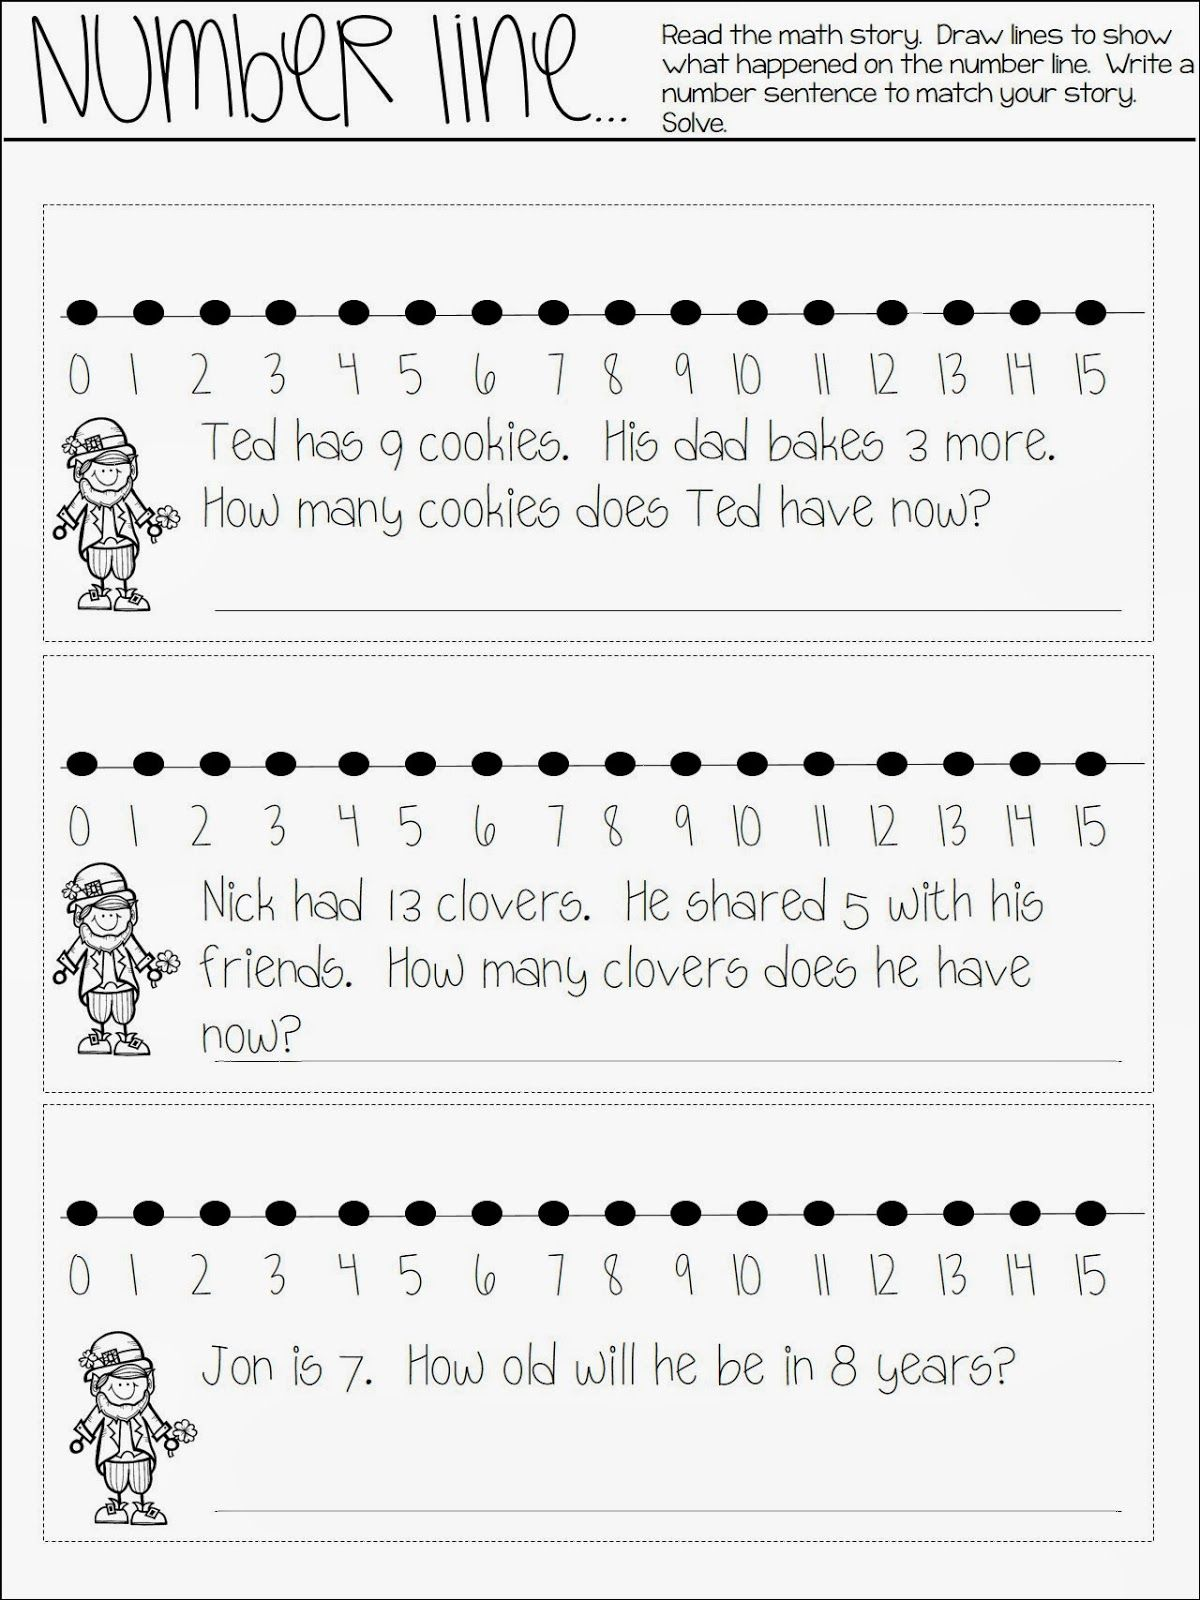 Free Math Journal Entry This Number Line Freebie Can Be Used In Math Journals Math Notebooks And Interactive Noteboo Line Math Math Journals 1st Grade Math [ 1600 x 1200 Pixel ]